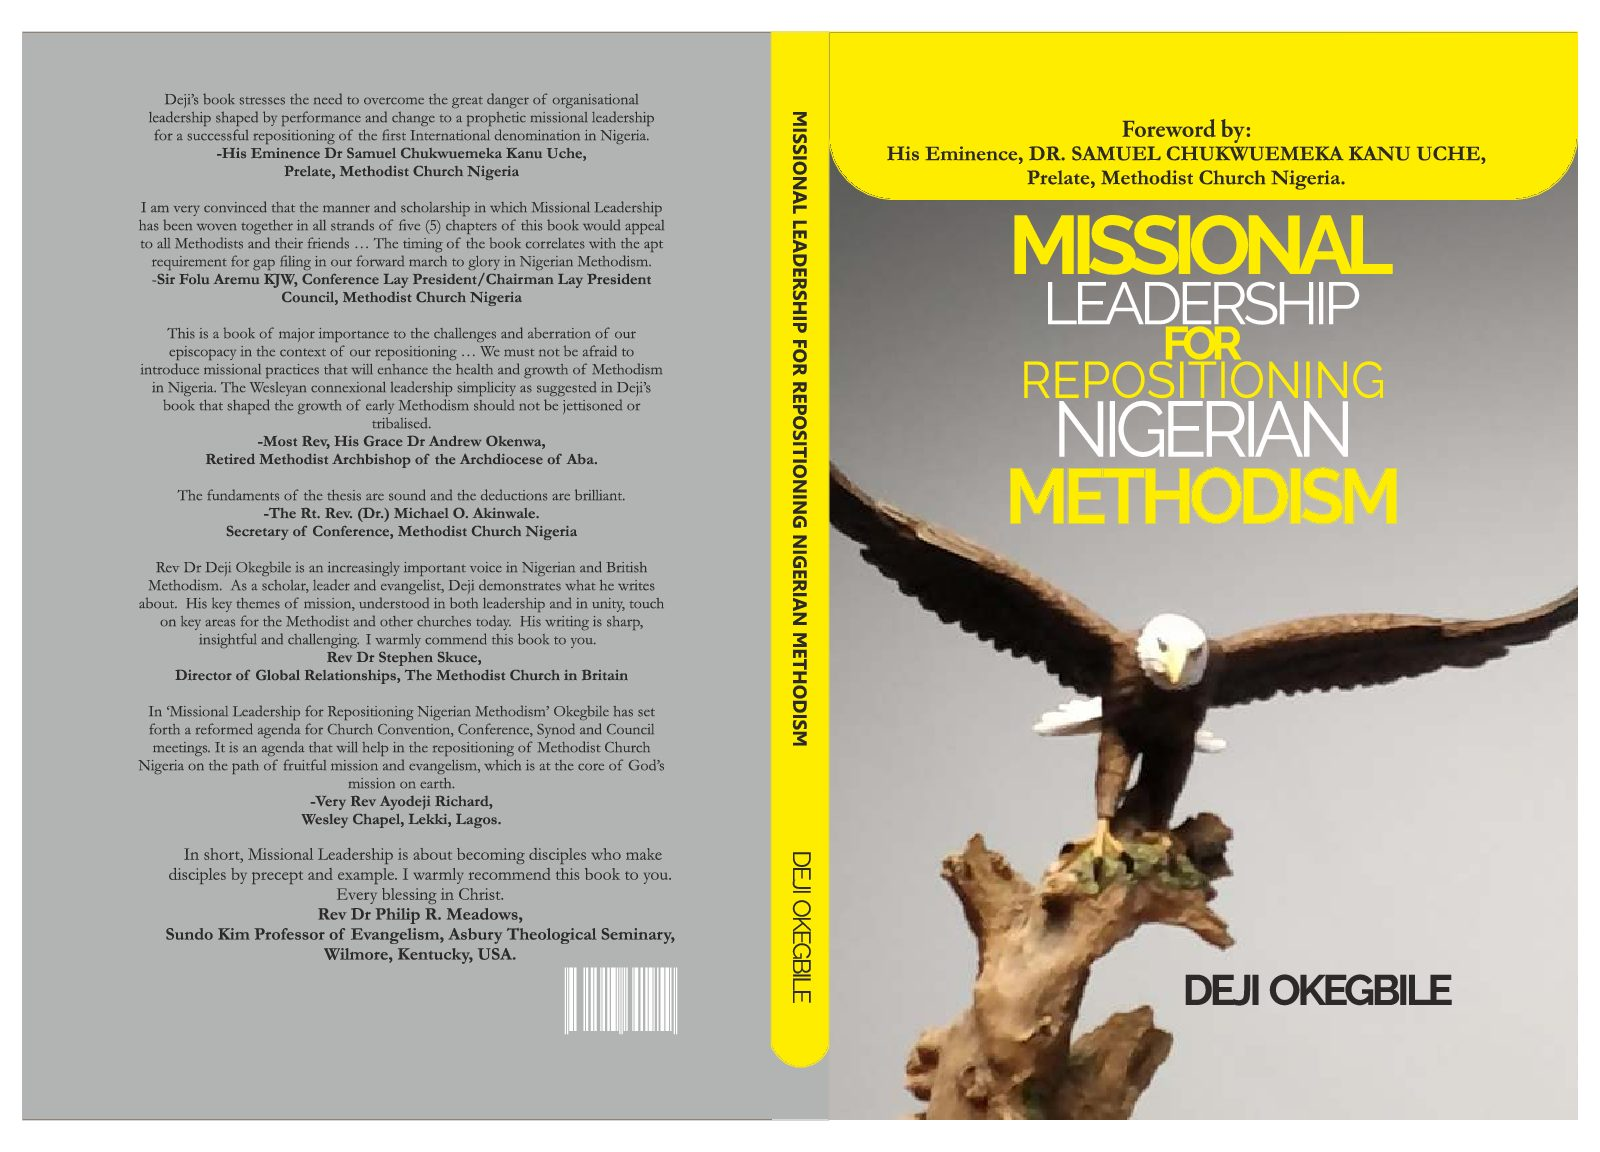 Watch Out: My New Book: Missional Leadership for Repositioning Nigerian Methodism